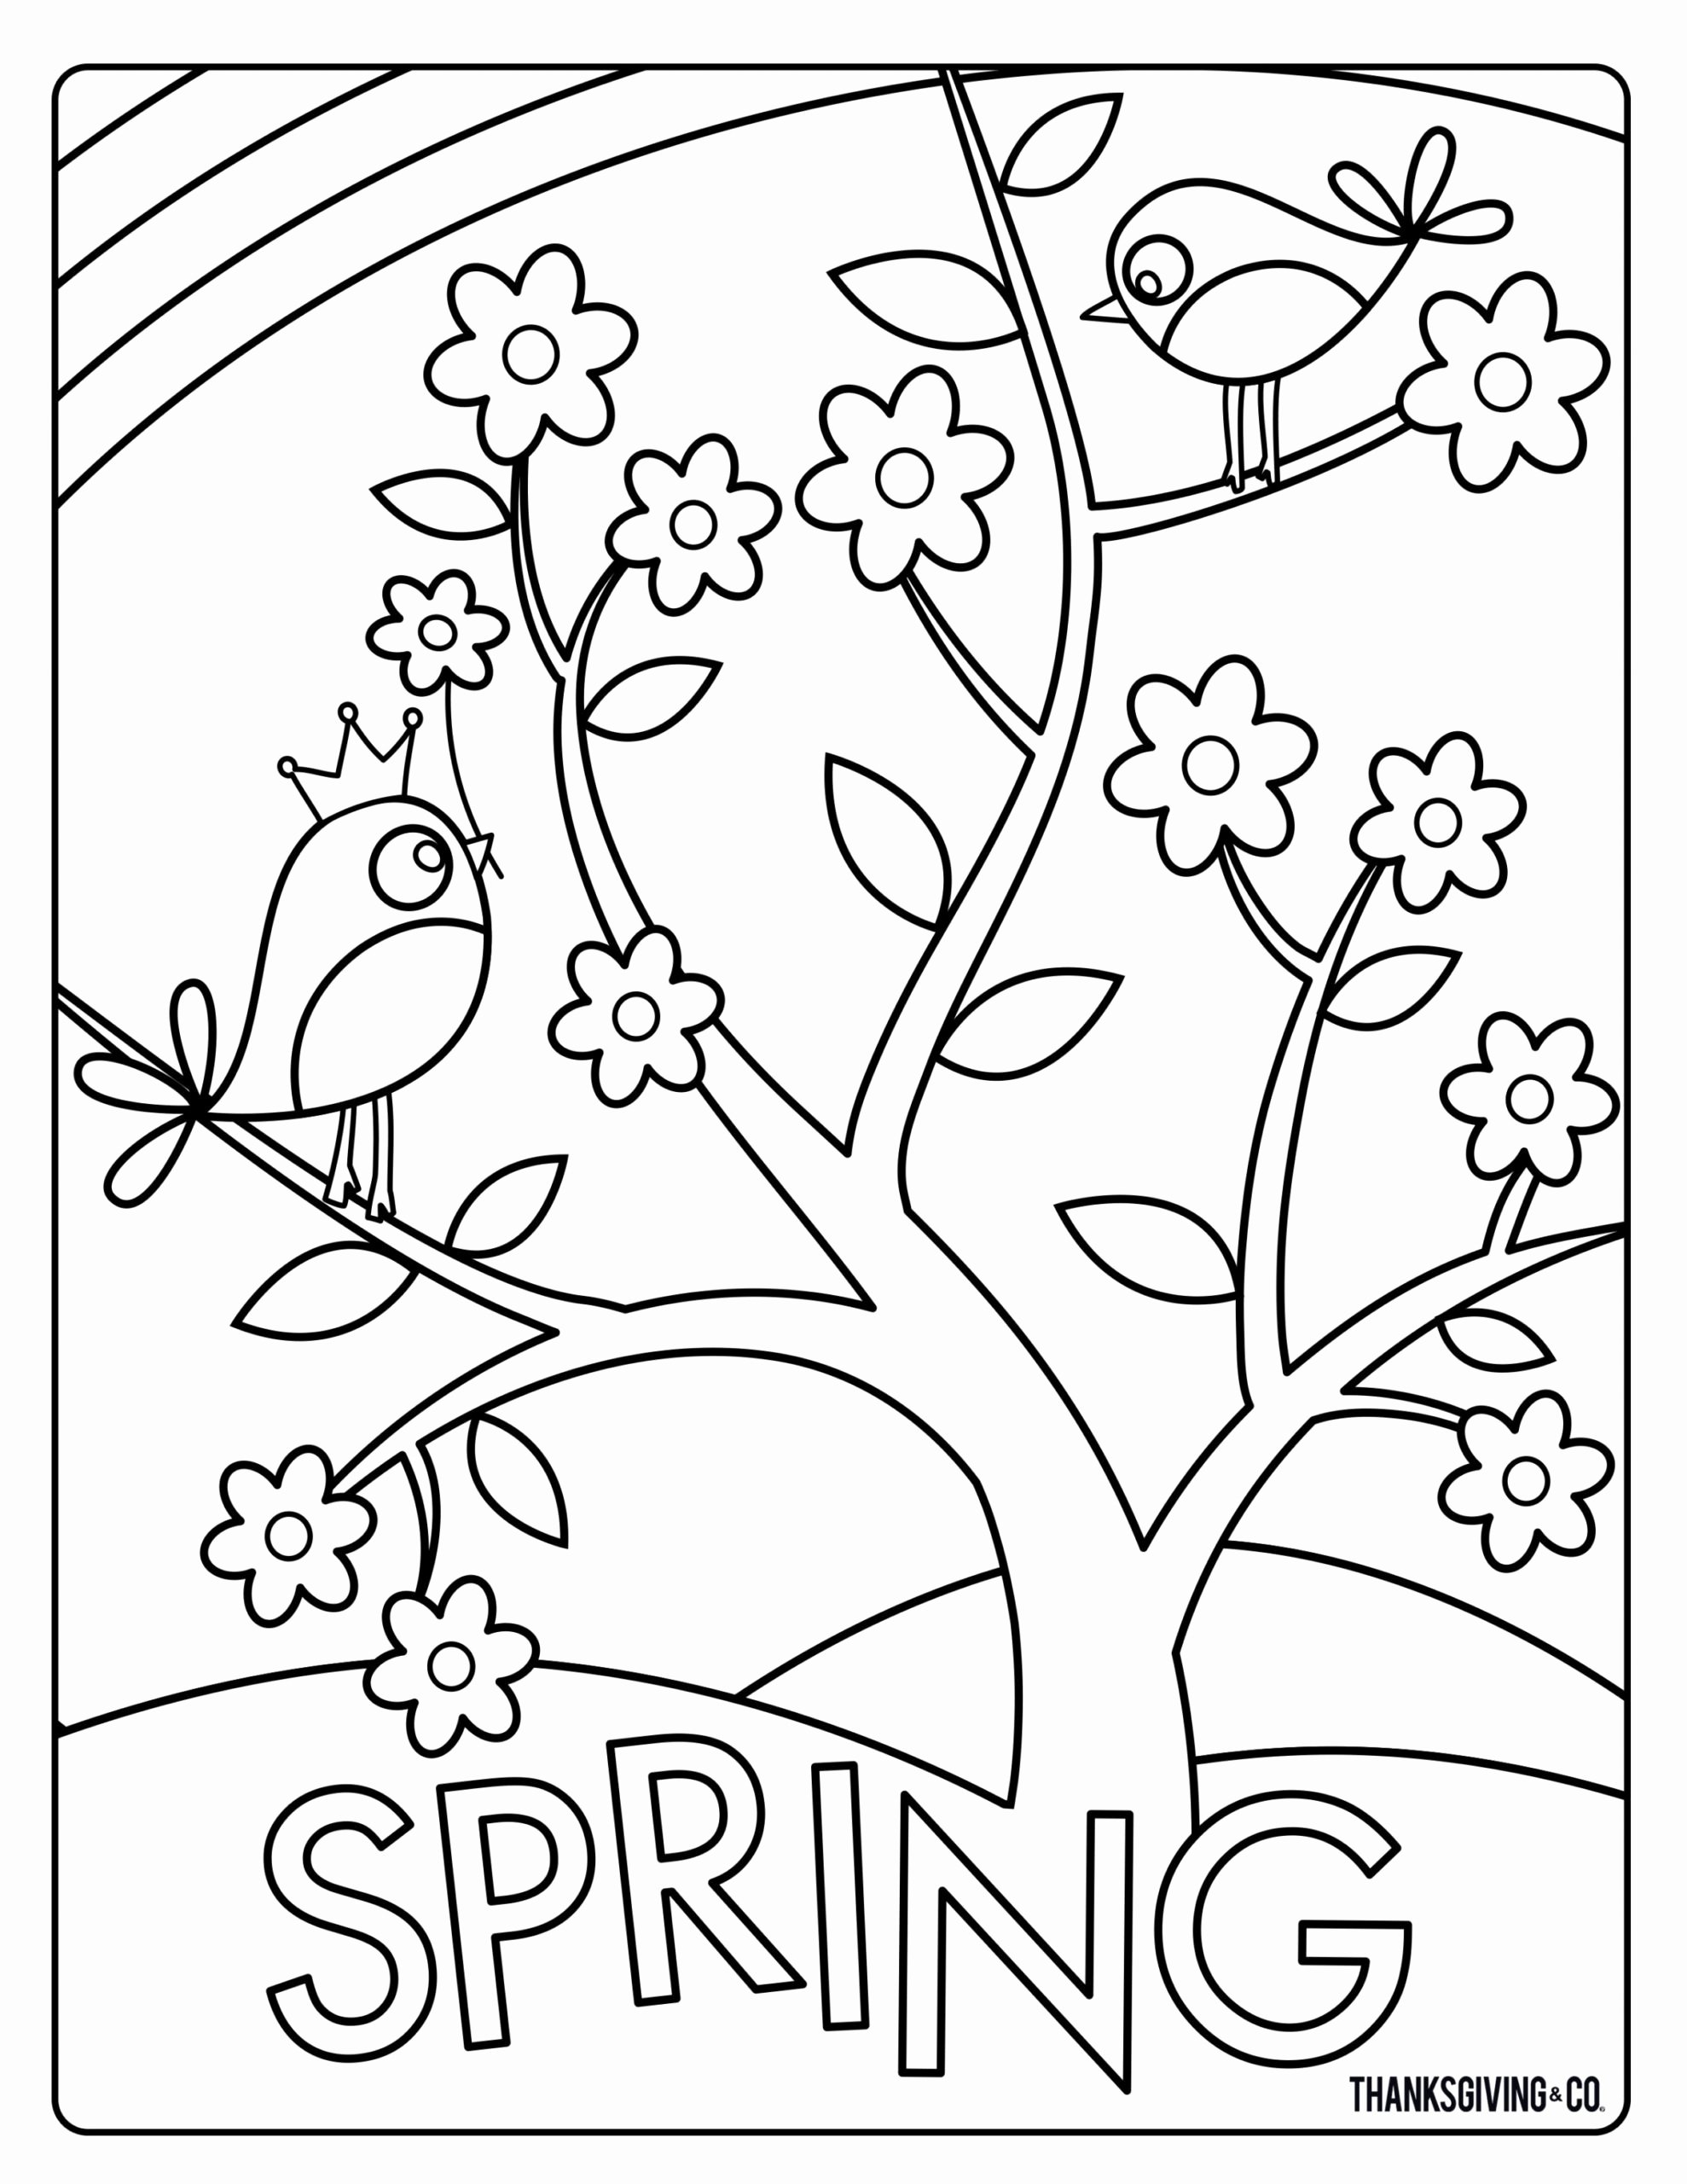 Springtime Worksheets for Preschoolers Printable Spring Coloring Sheets for toddlers Coloringheets Happy Kids